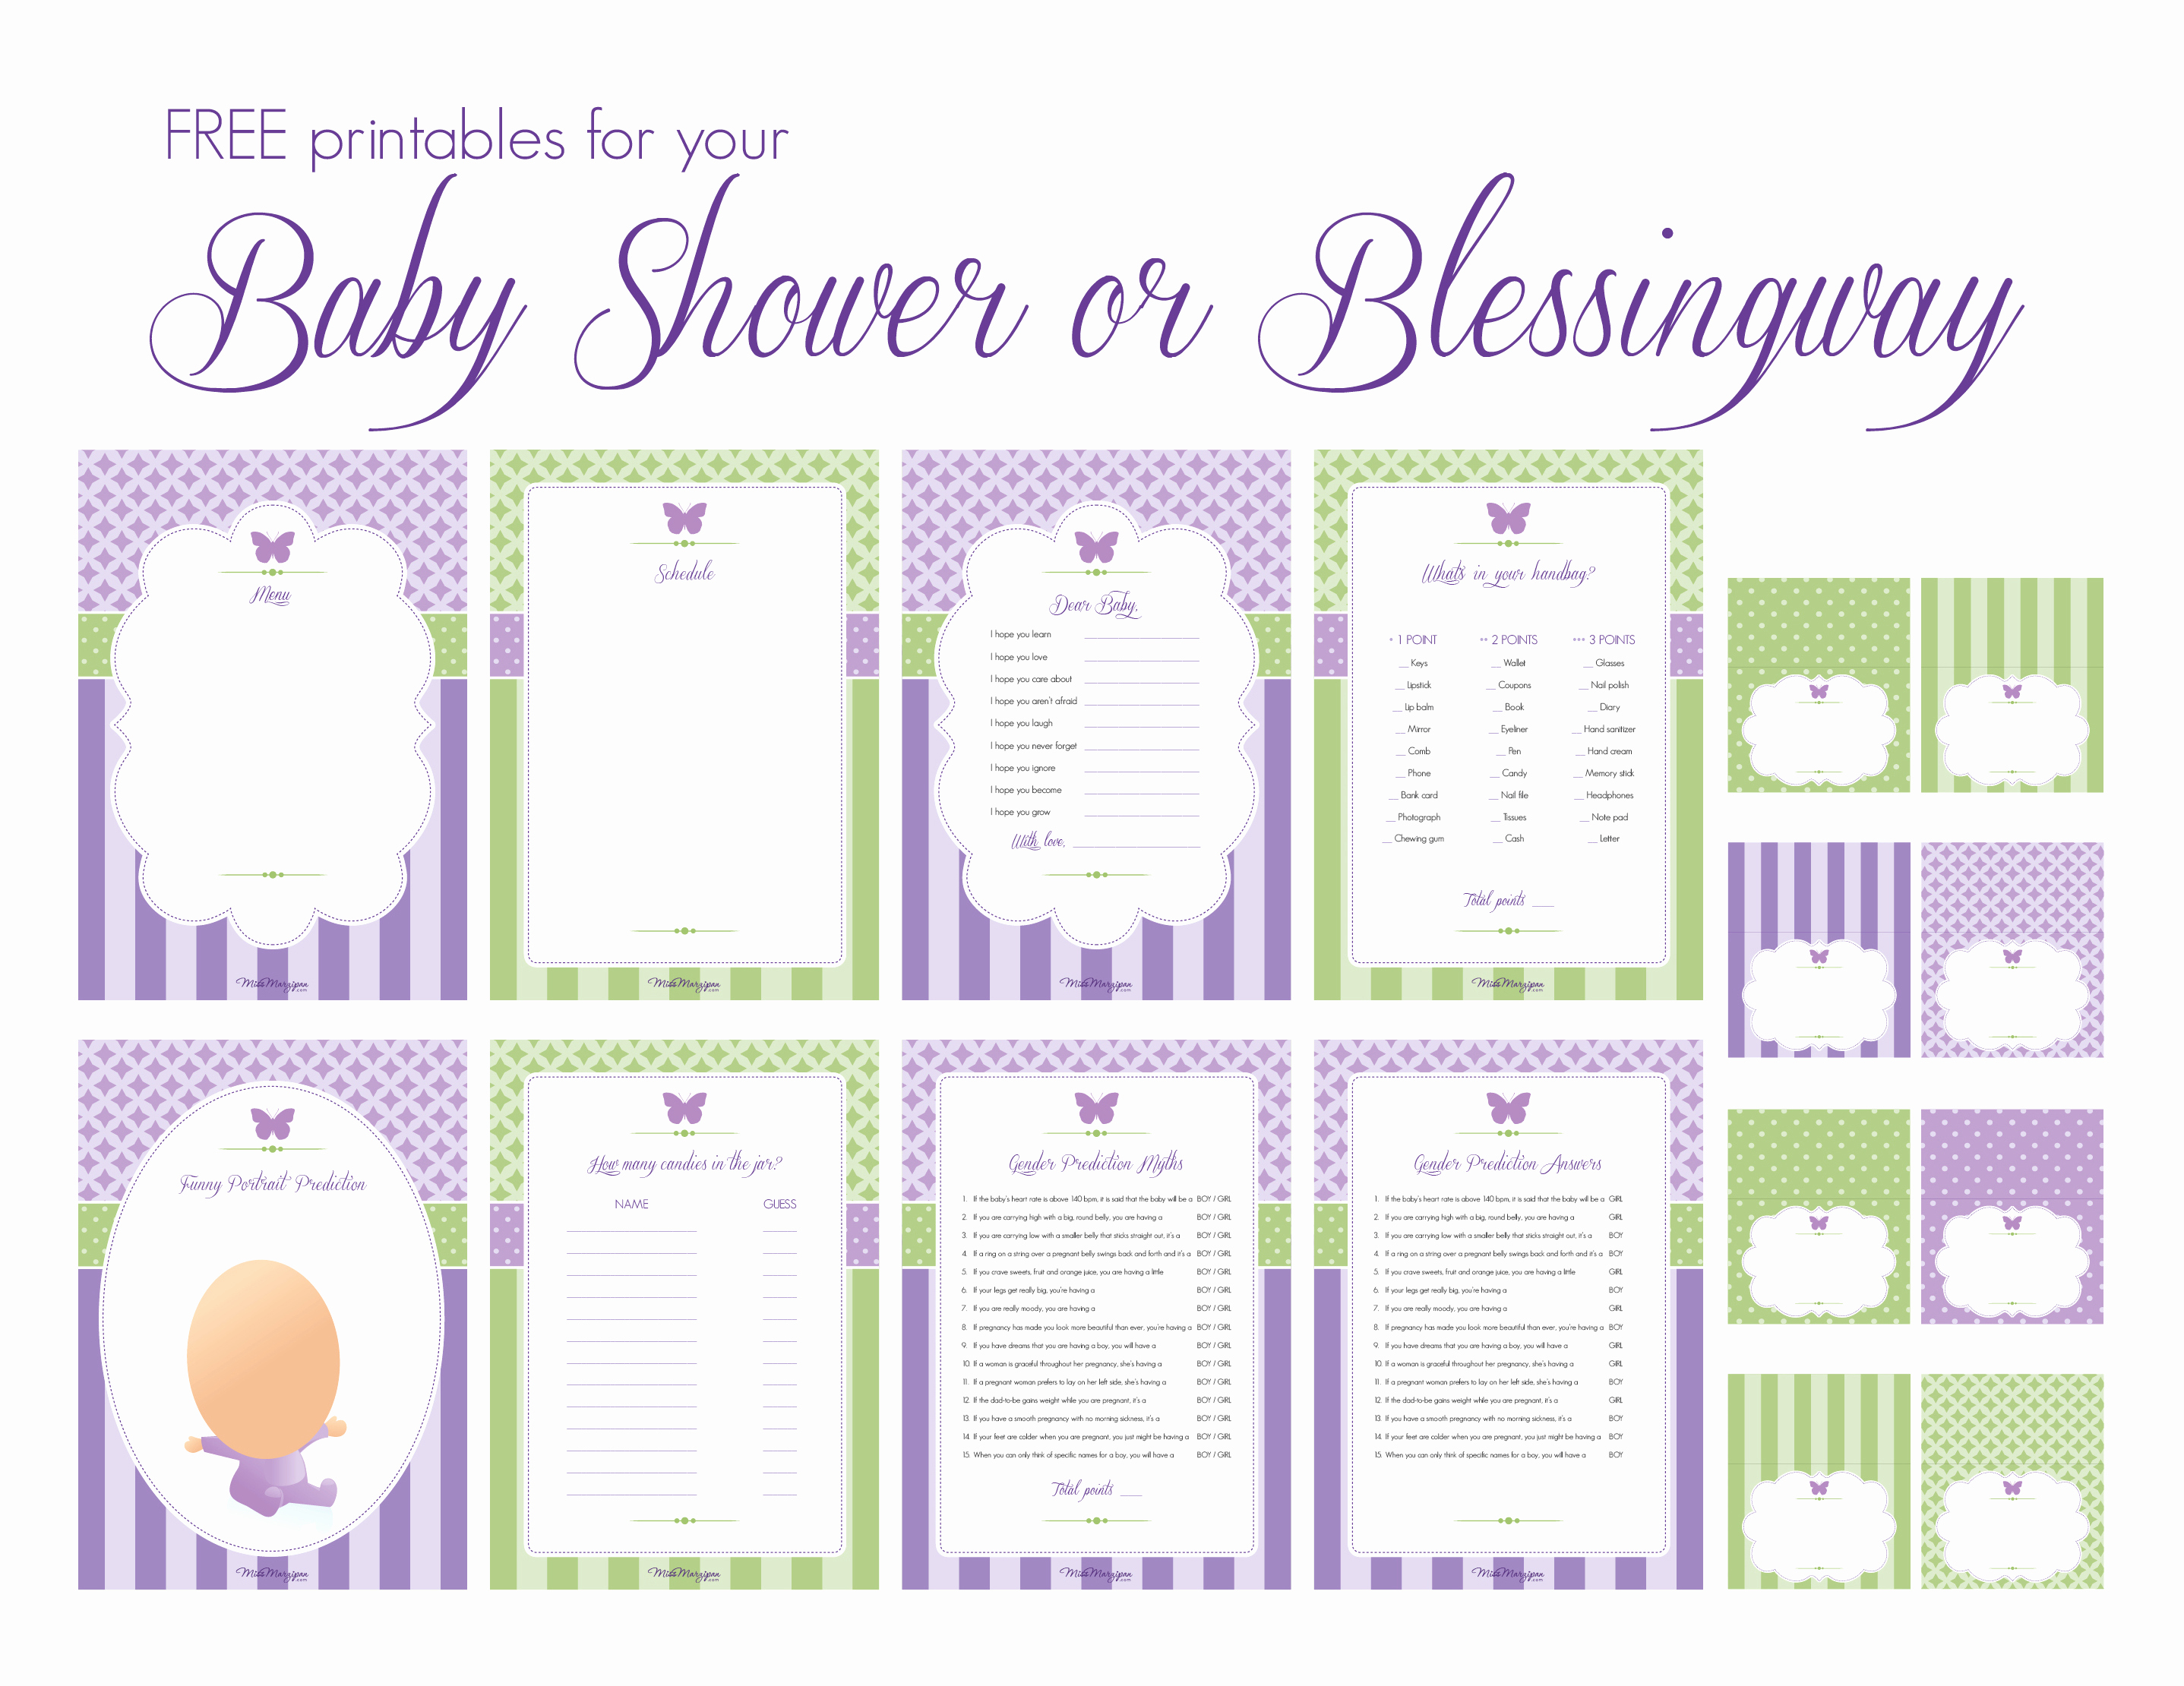 Free Baby Shower Templates Awesome the Plete Blessingway Round Up with Lots Of Free